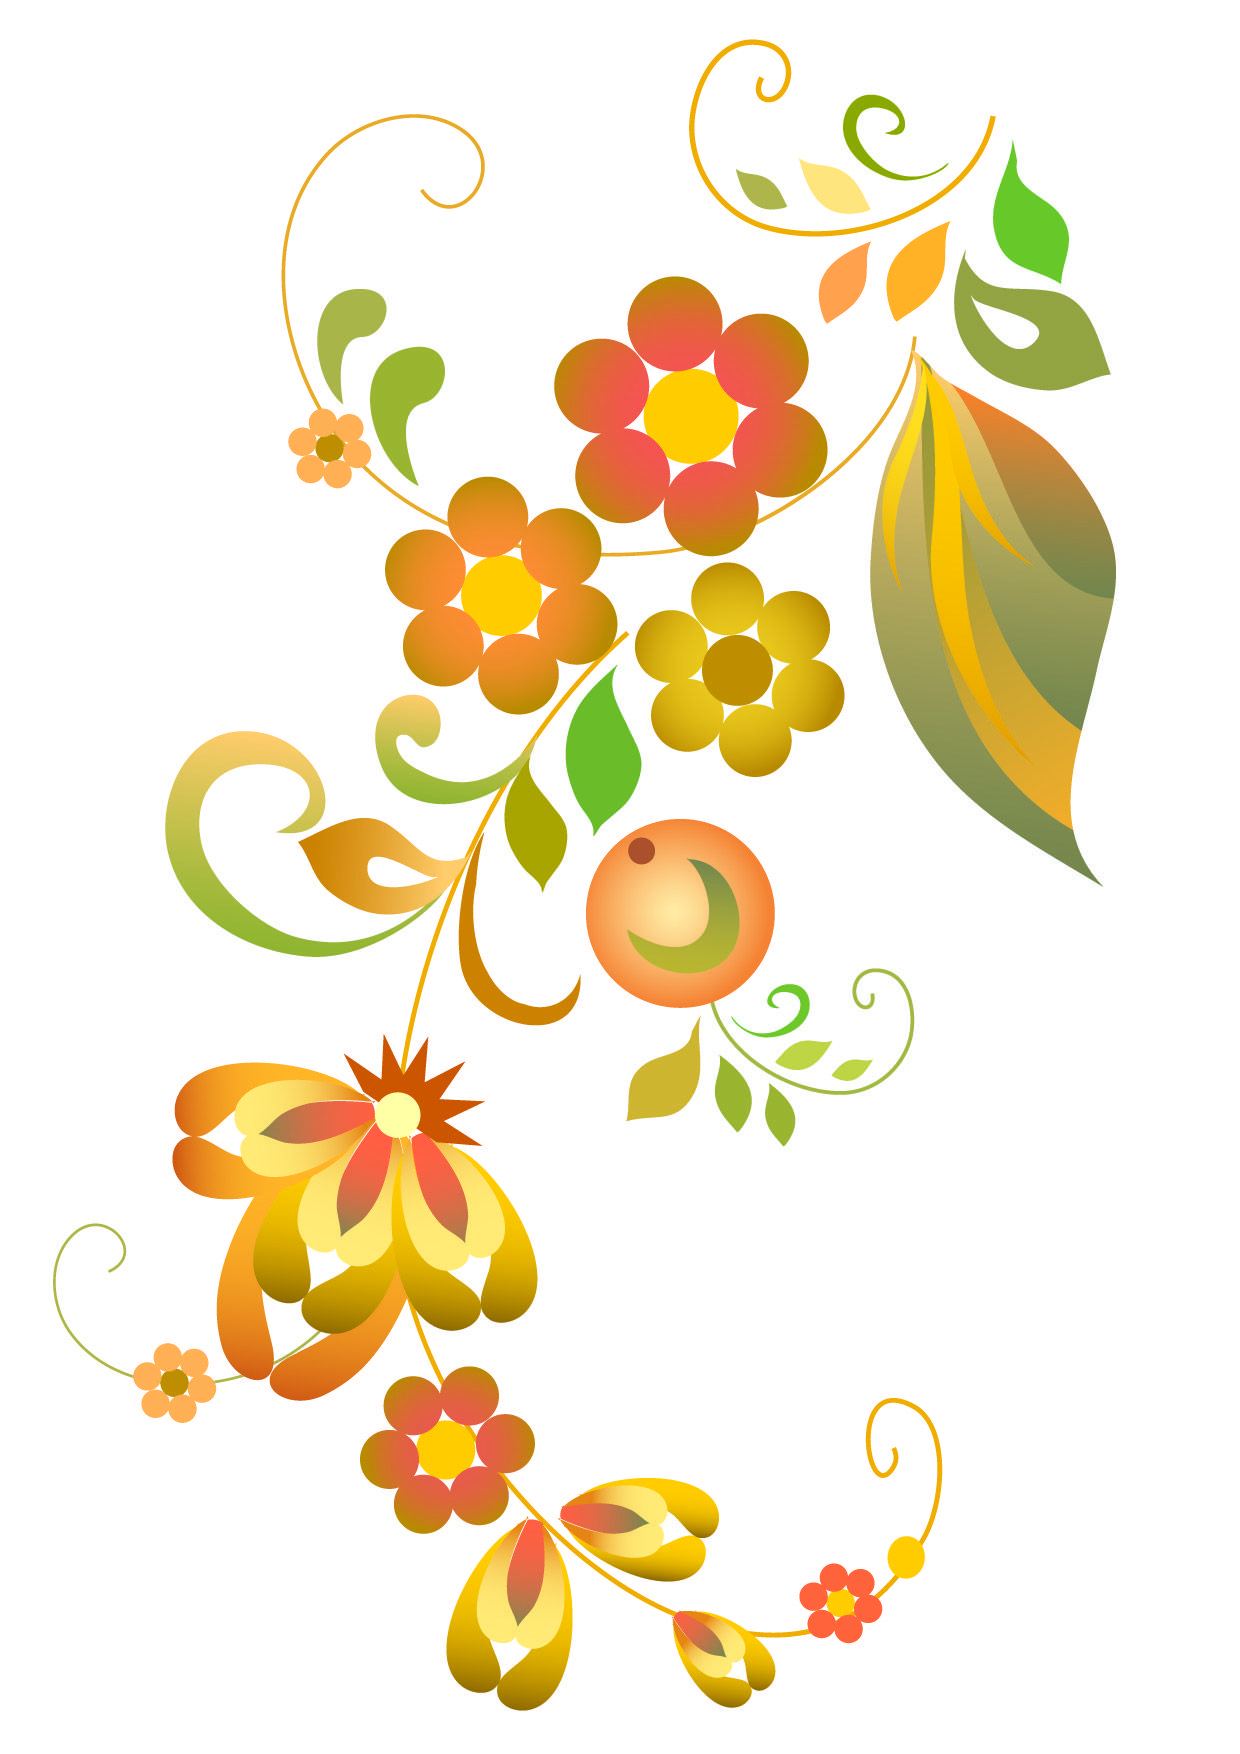 pin by brenda christmas on flowers pinterest flower patterns rh pinterest com vector seamless flower pattern vector flower pattern psd